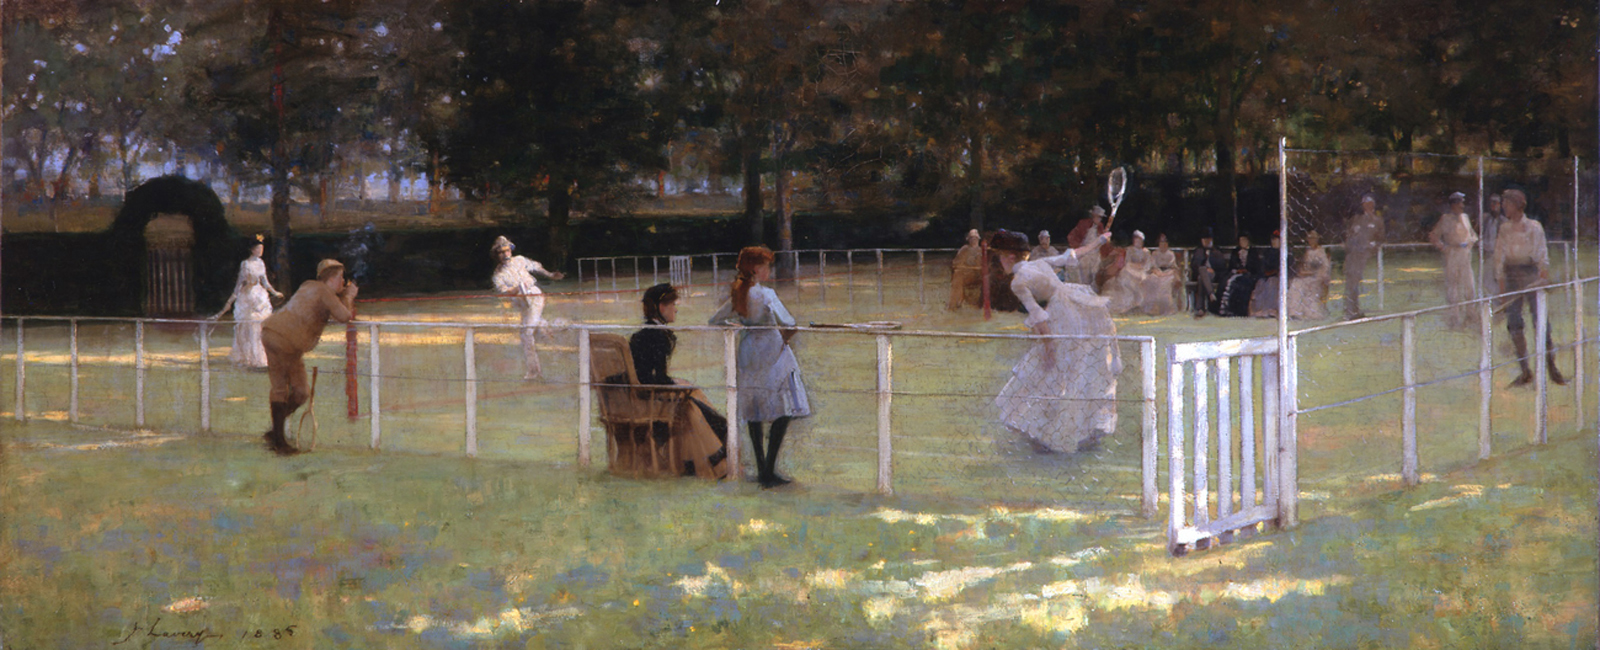 The tennis party *oil on canvas *76.2 x 183 cm *signed b.l.: J Lavery 1885